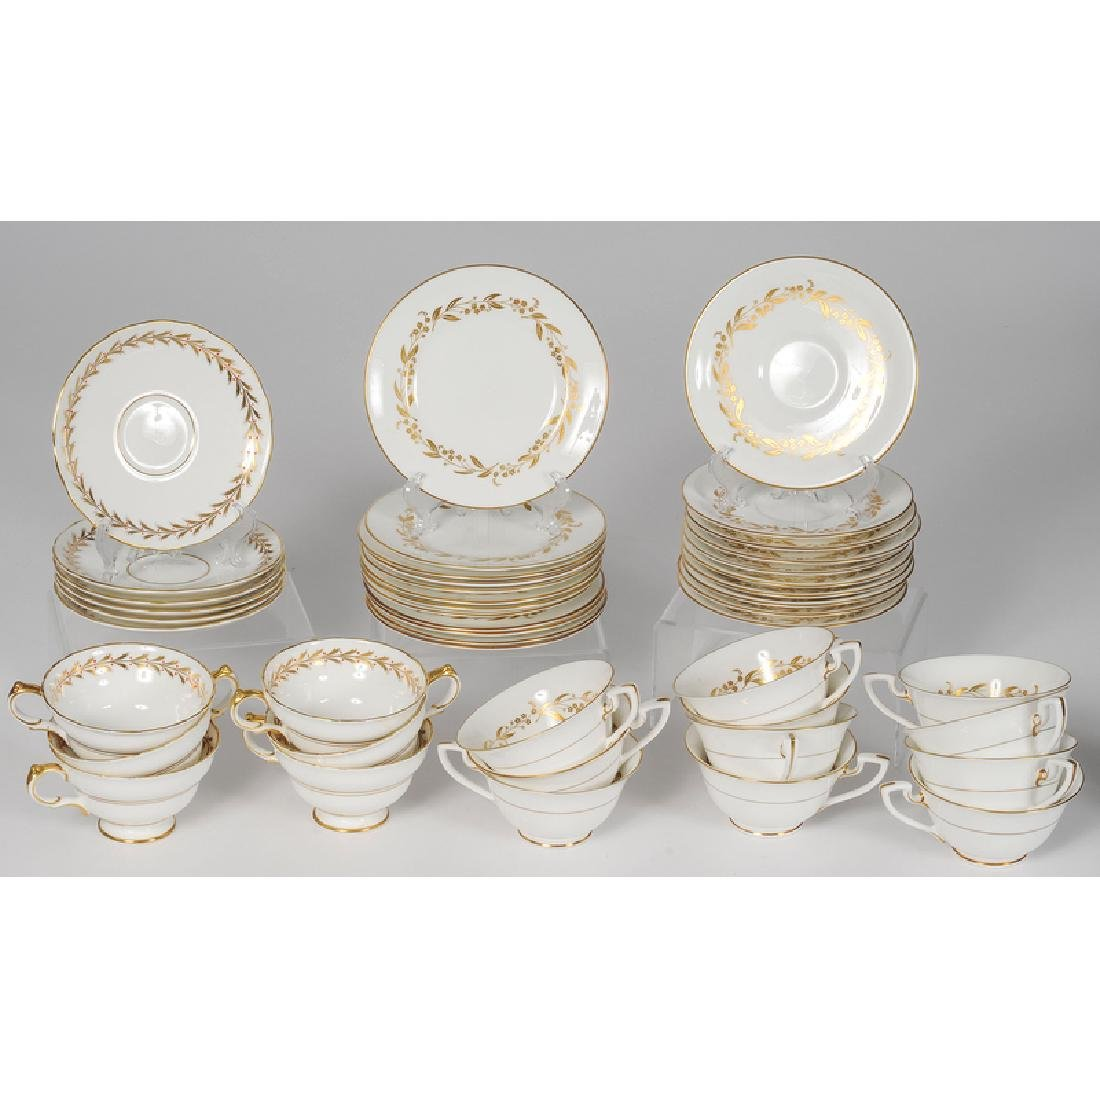 Worcester and Copeland Porcelain Tea Sets - 4